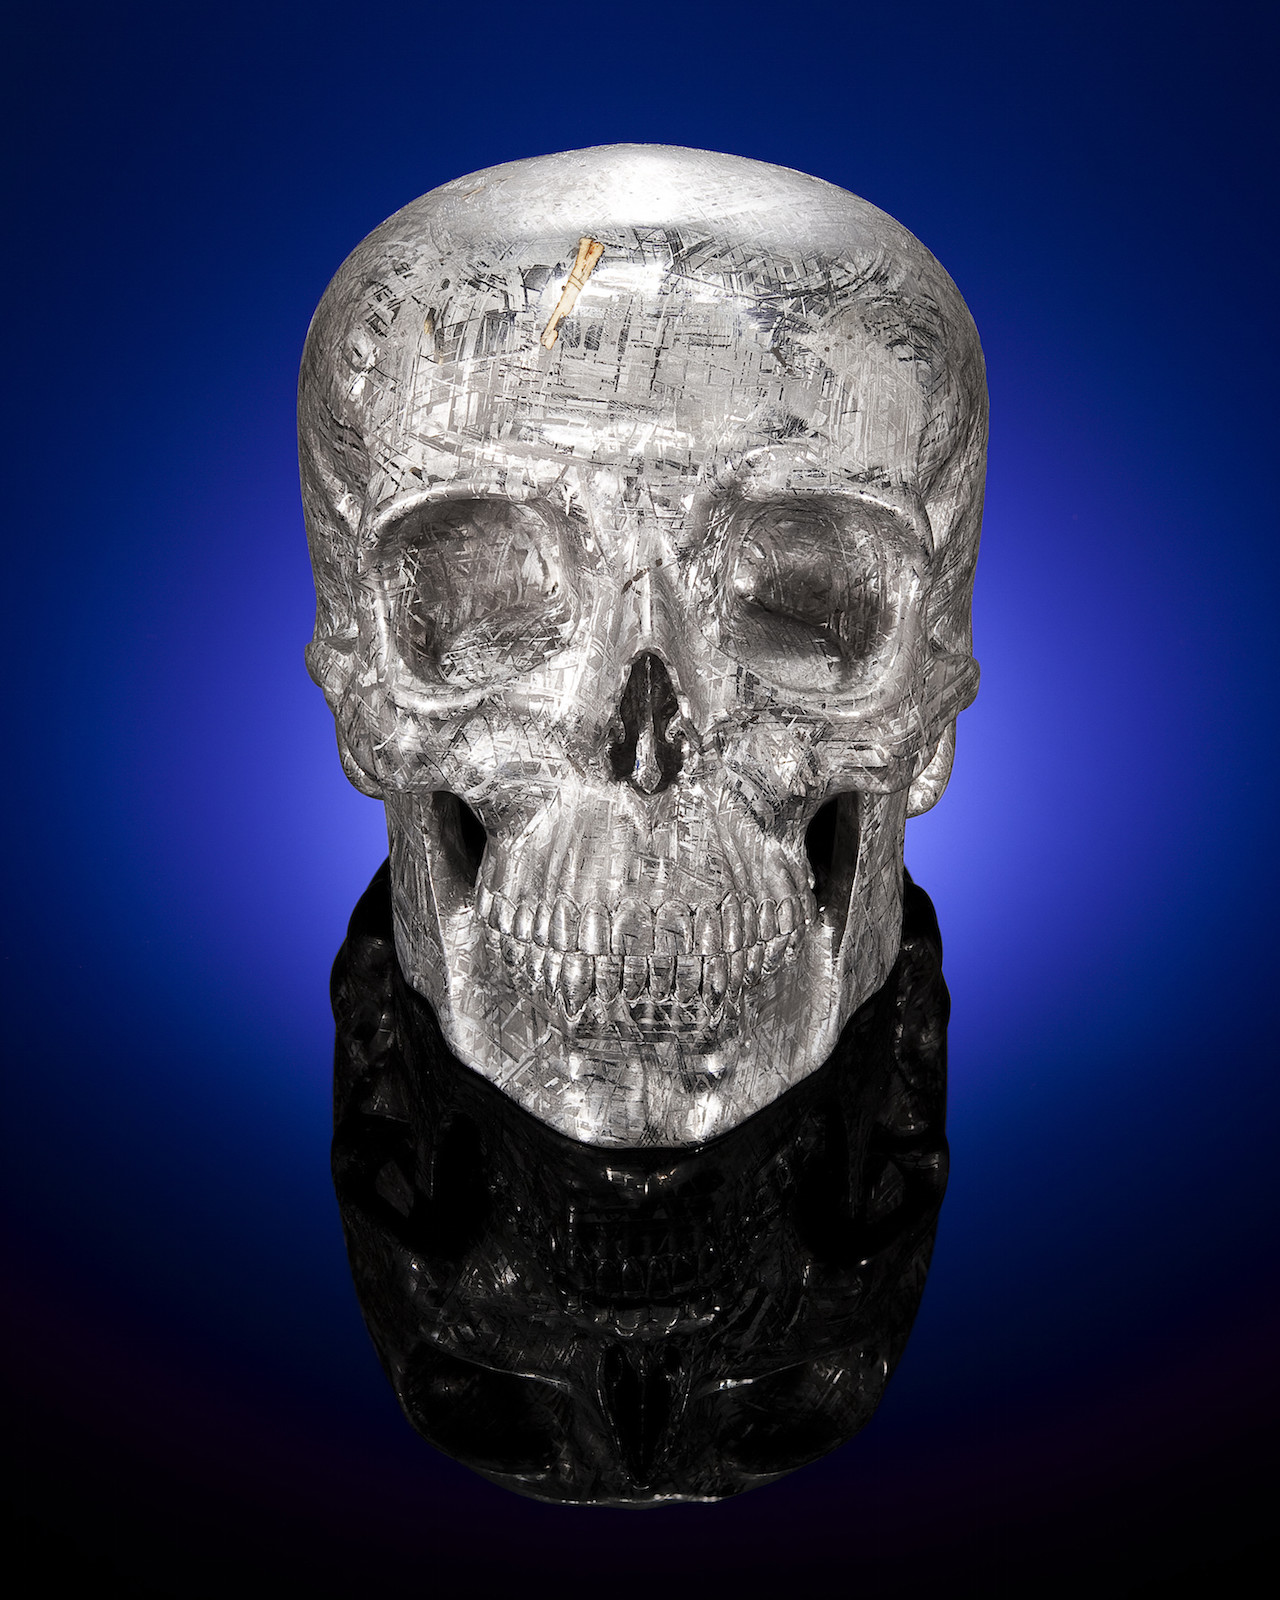 Yorick was carved by Lee Downey from a single piece of Gideon meteorite